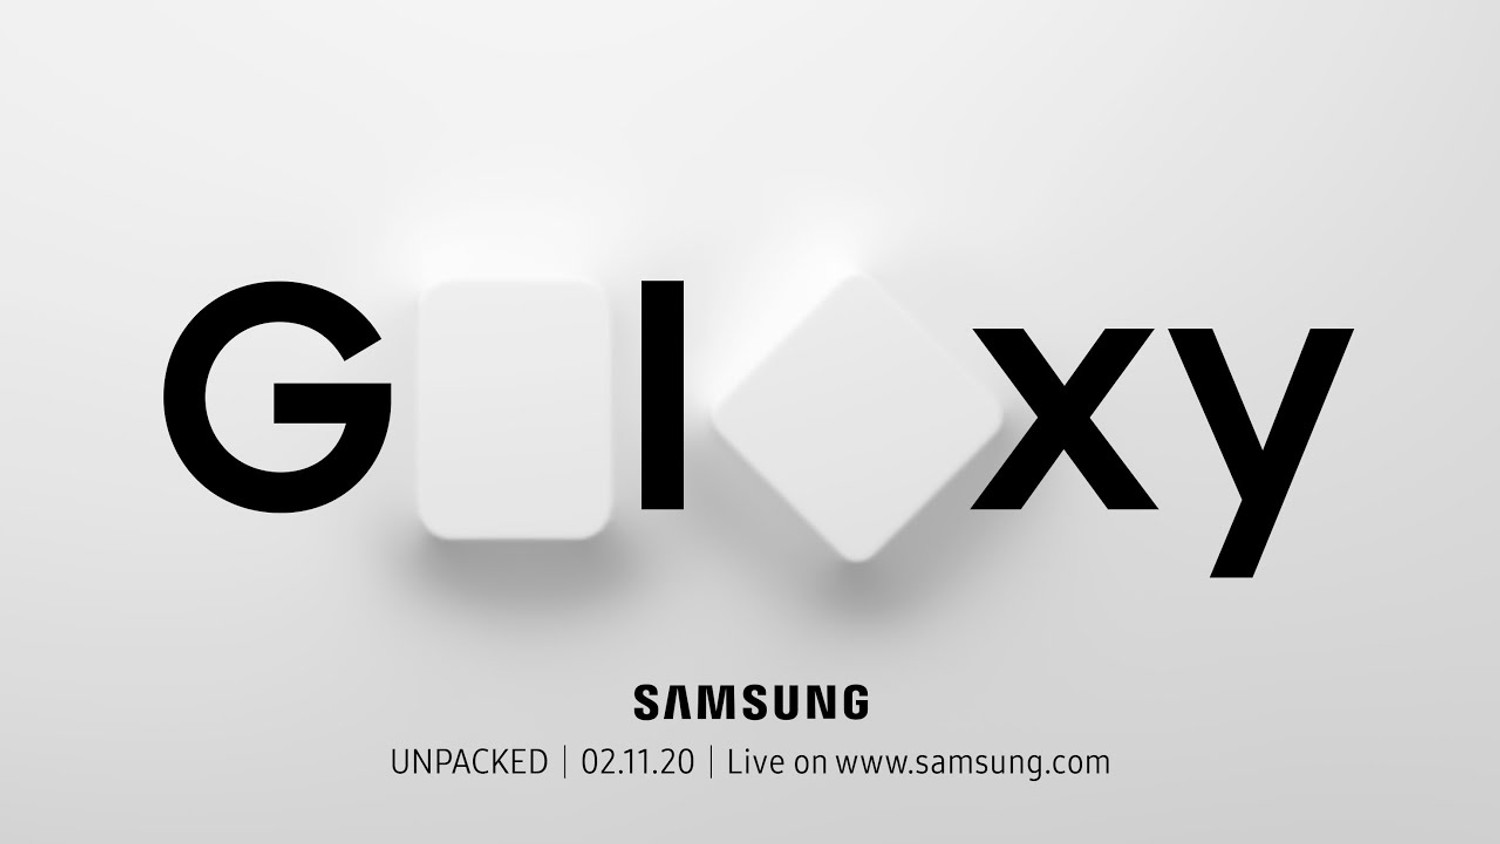 Samsung's set to Unveil the new S20 family in less than a month!